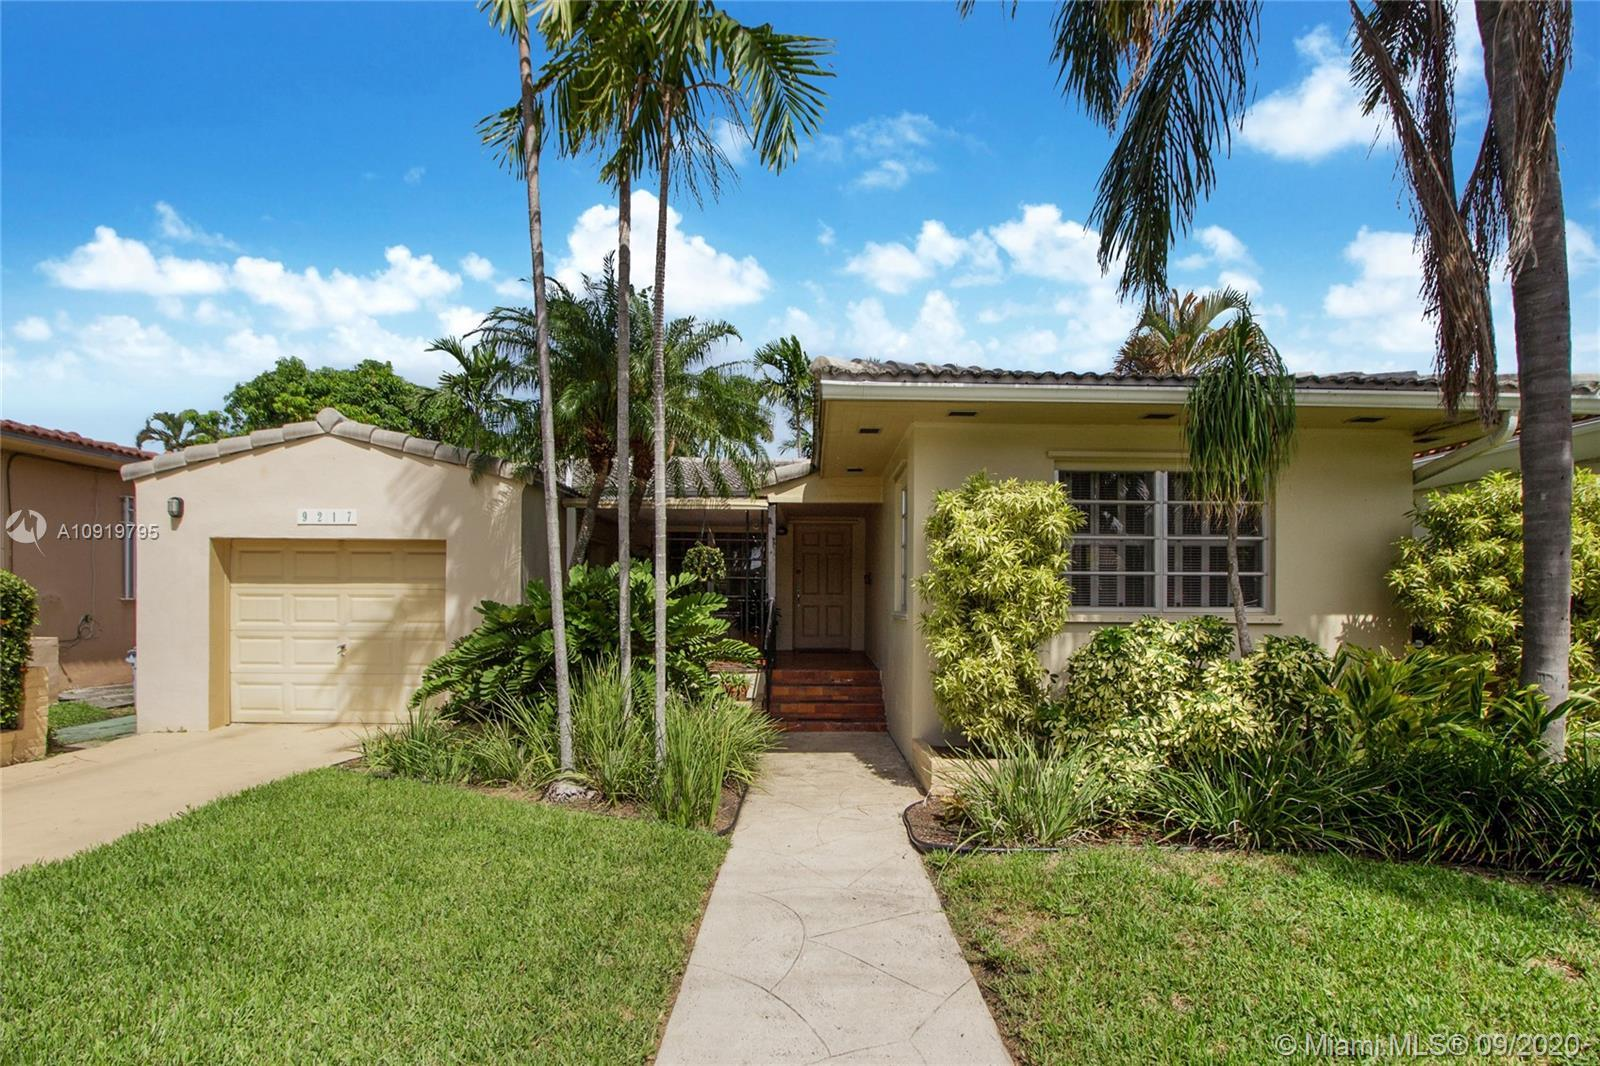 This charming Surfside home has 2 bedrooms, 2 bathrooms & a functional 1-car garage. An inviting cov